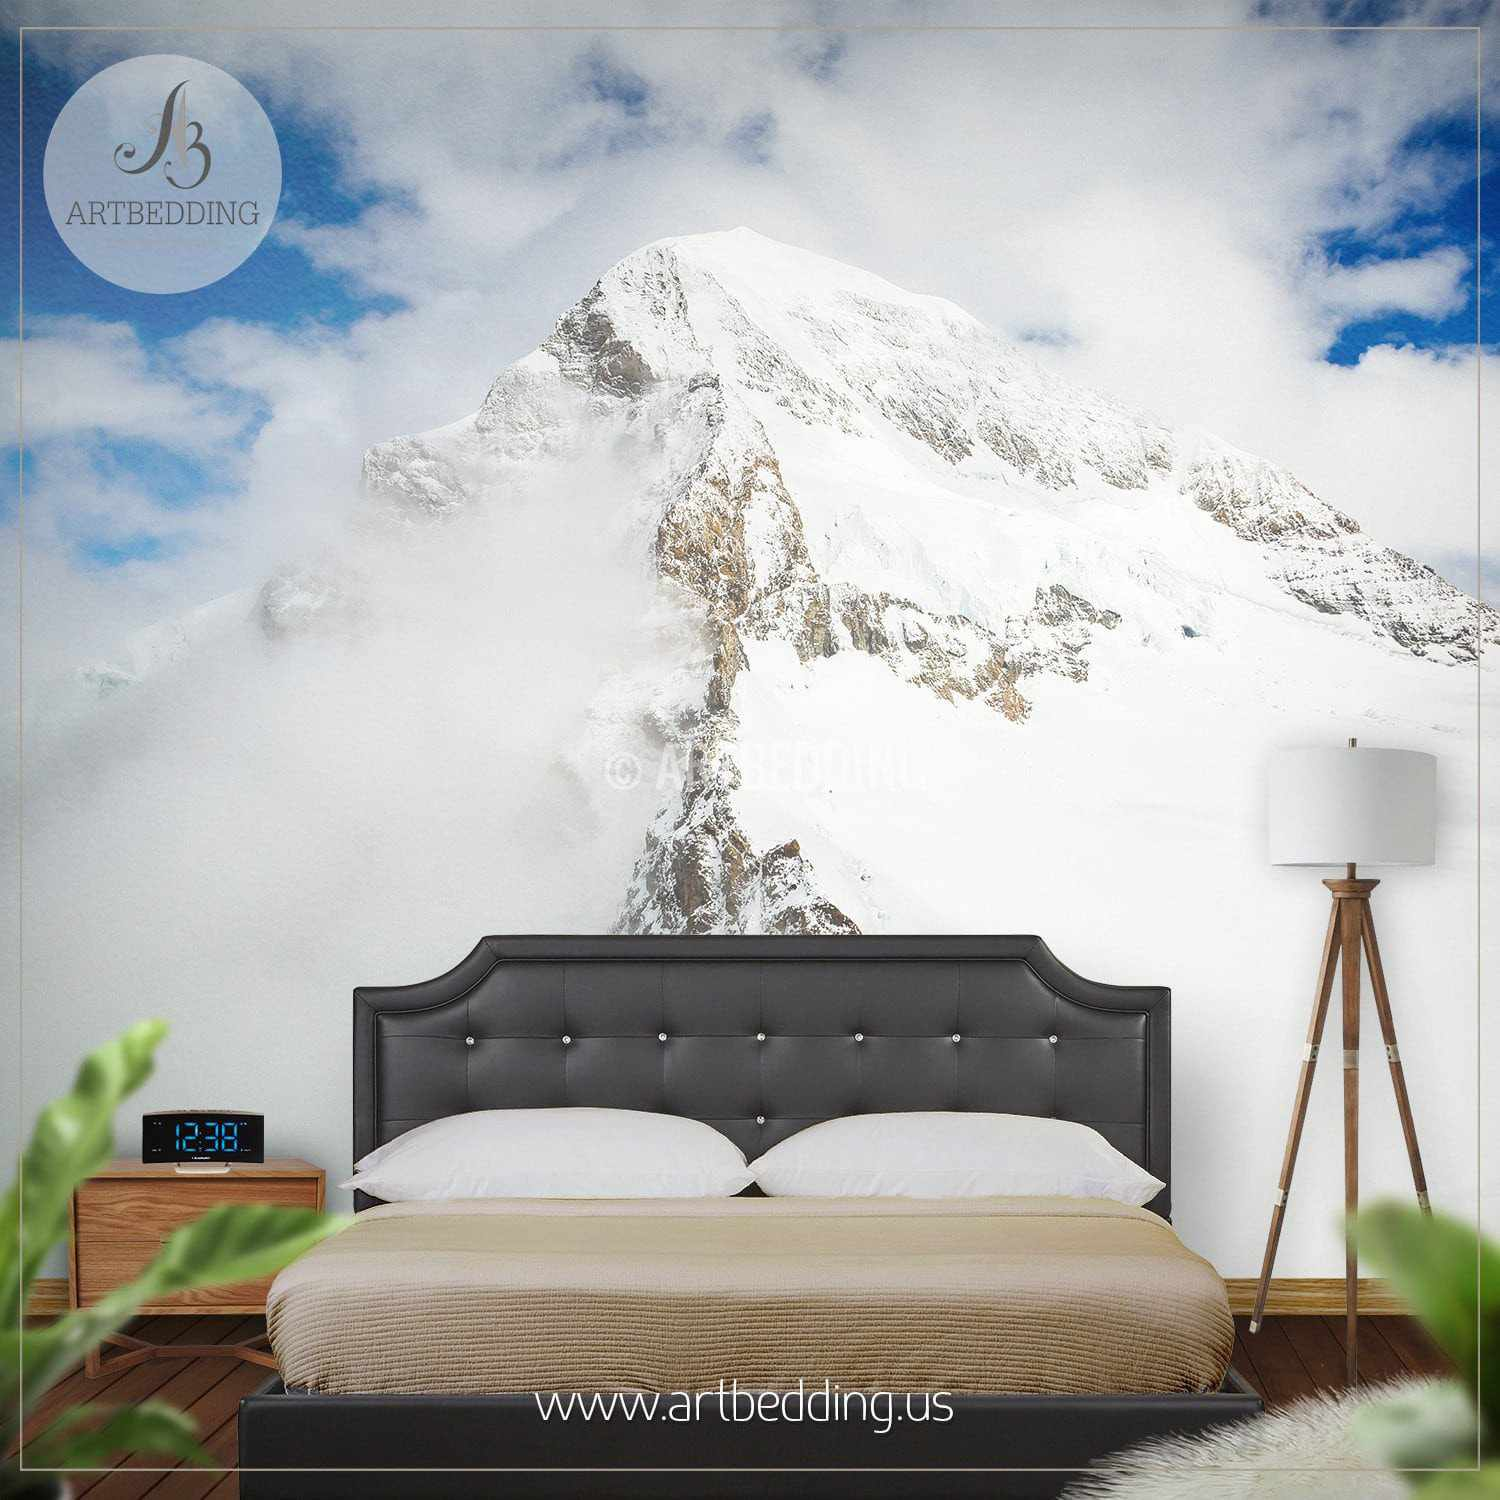 ... Snow Mountain Wall Mural, Self Adhesive Peel U0026 Stick Photo Mural,  Forest Wall Mural ...